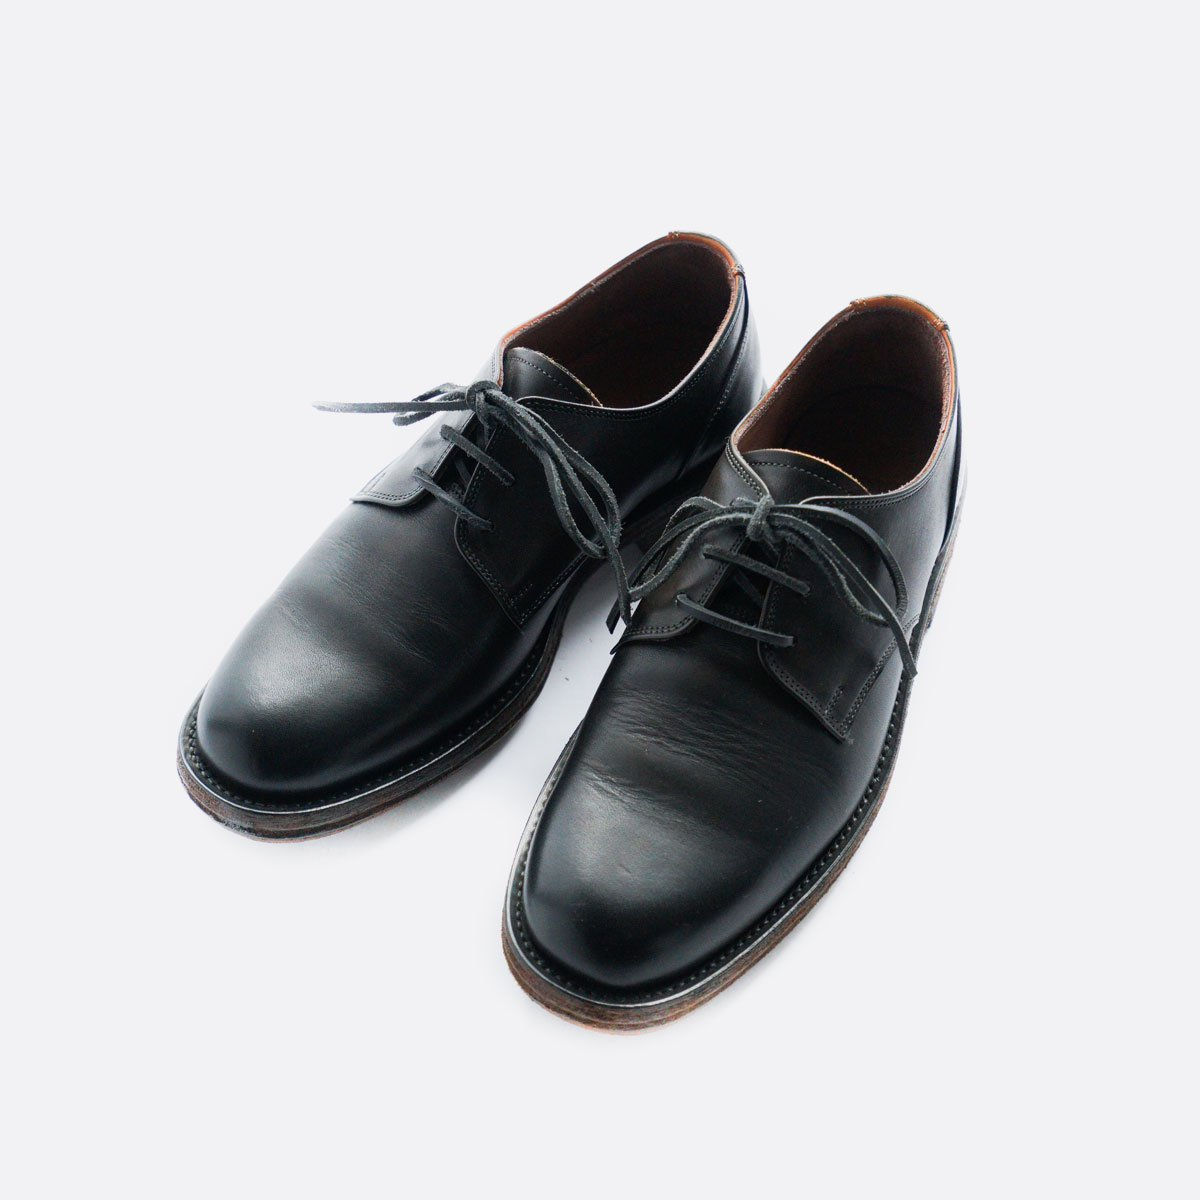 LEATHER&SILVER MOTO PLANE TOE OXFORD SHOES #1632(BLACK)2